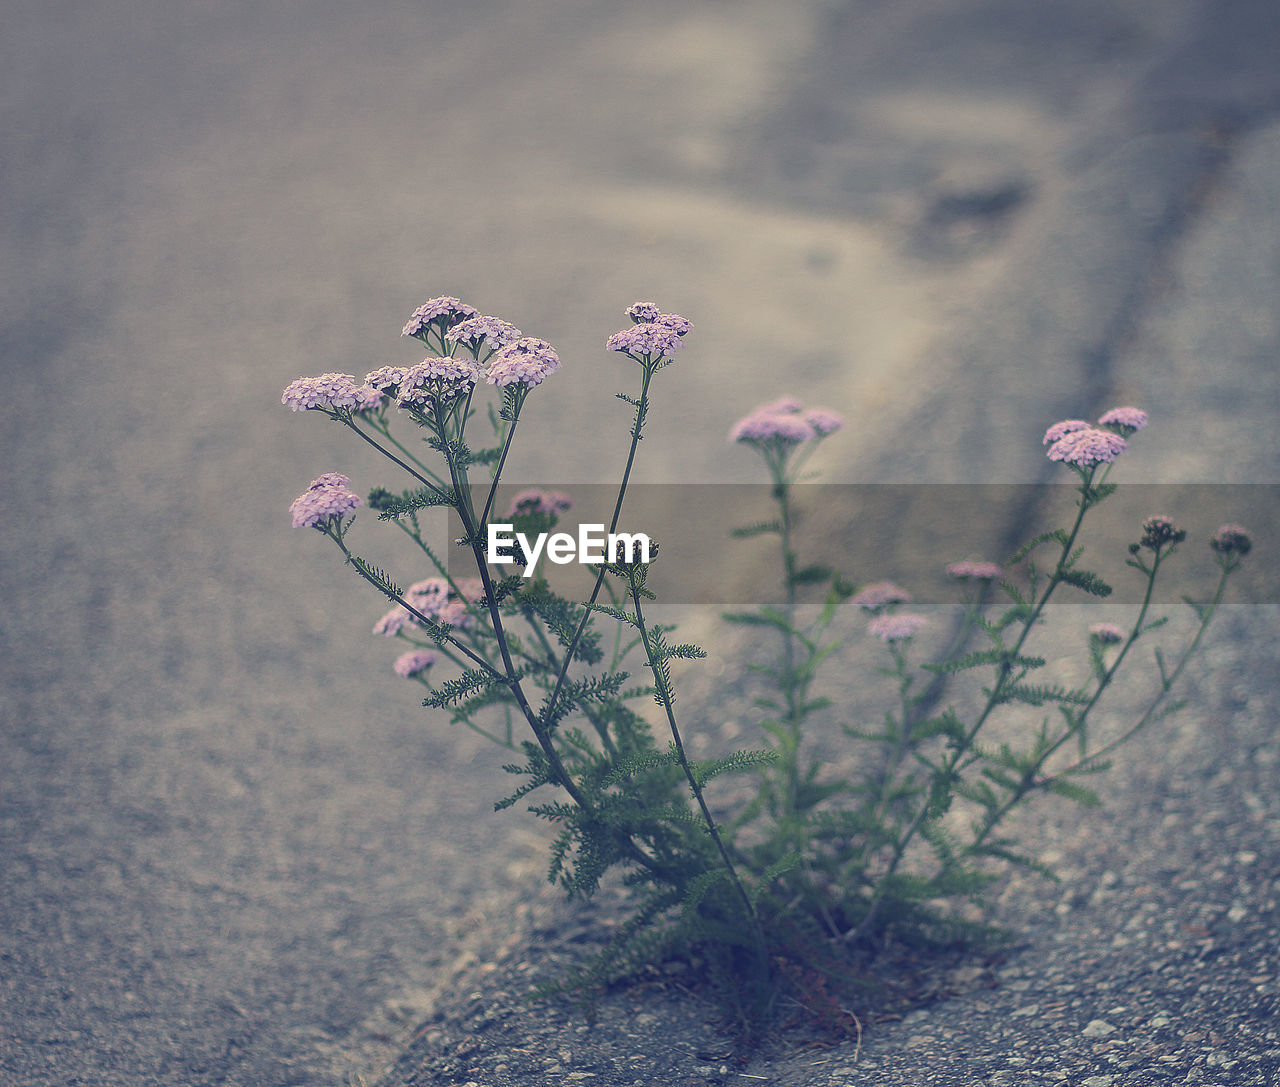 flower, flowering plant, plant, beauty in nature, nature, growth, vulnerability, fragility, no people, freshness, close-up, pink color, outdoors, petal, land, focus on foreground, day, selective focus, tranquility, field, flower head, purple, spring